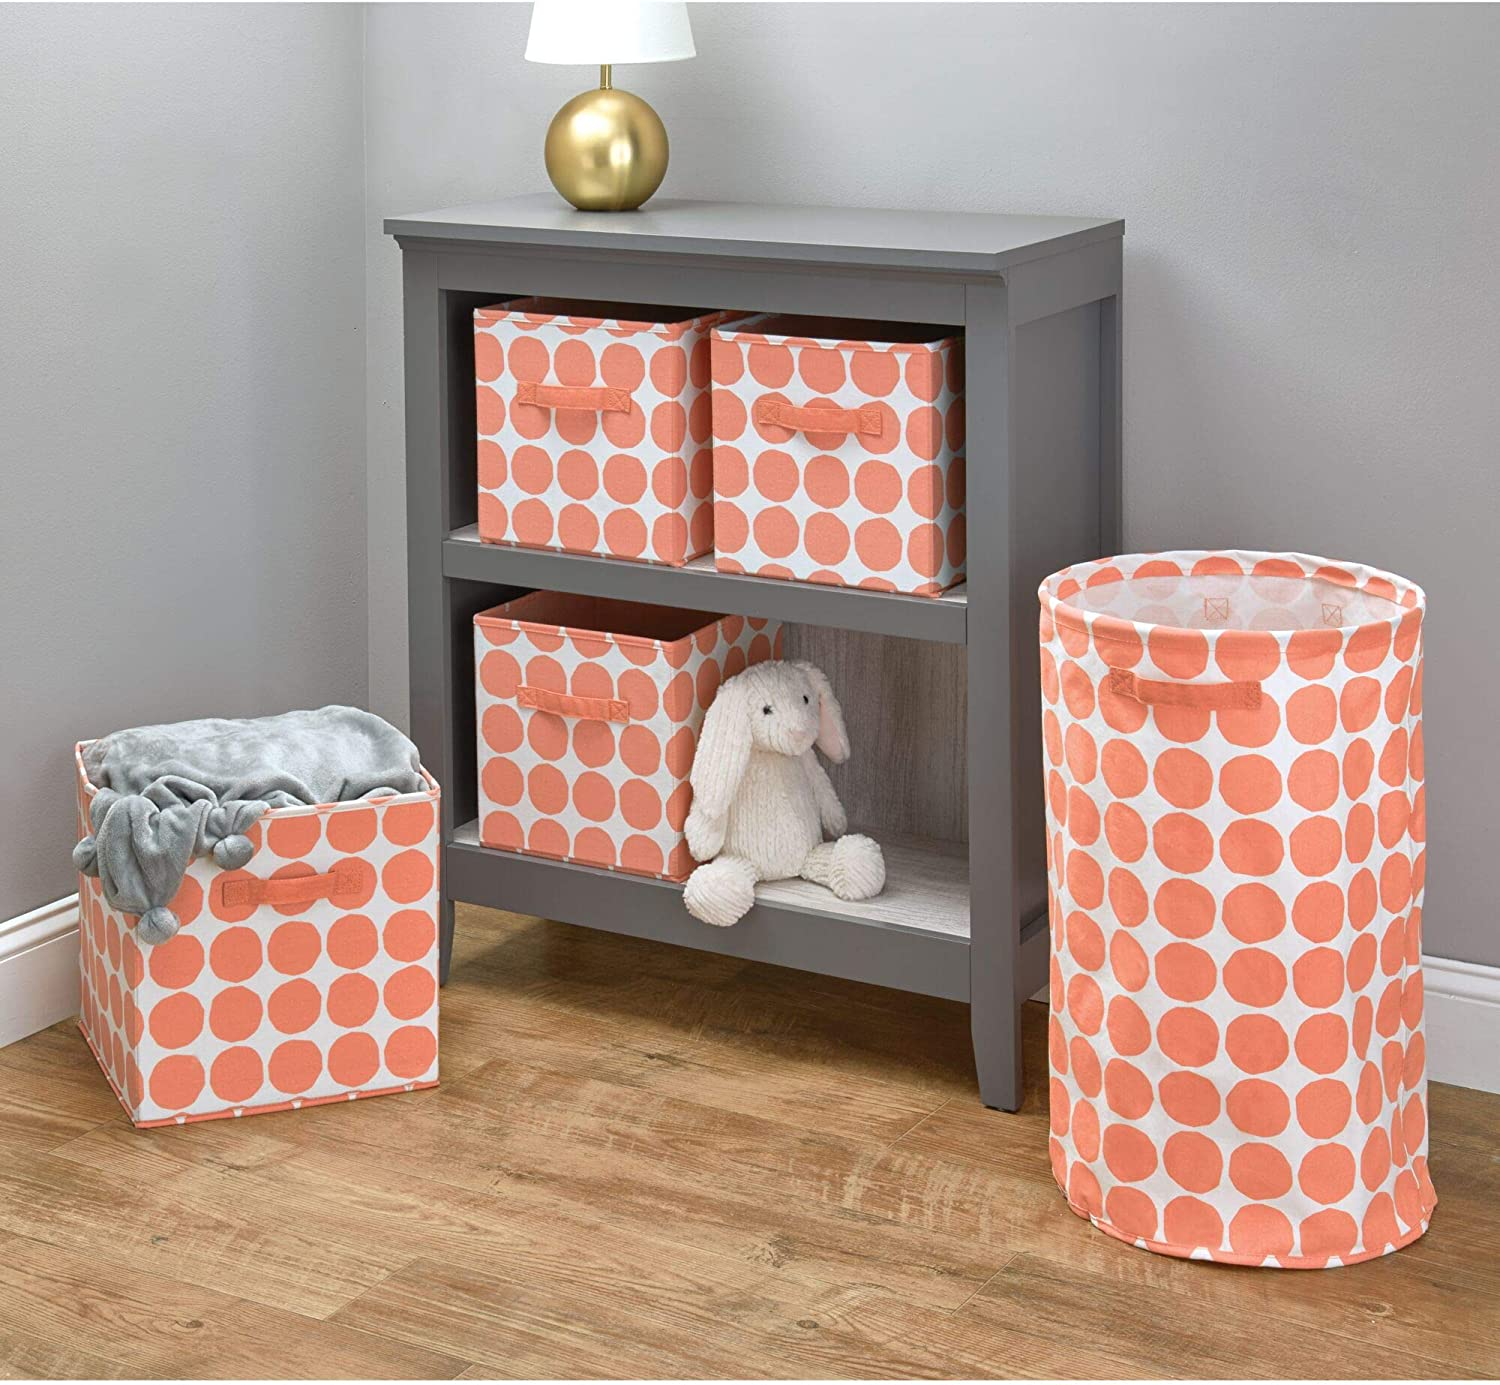 Bedroom and Nursery iDesign Canvas Storage Box Polka Dot Fabric Box for the Cupboard Orange Medium Foldable Toy Box Made of Cotton//Polyester Mix with 2 Handles